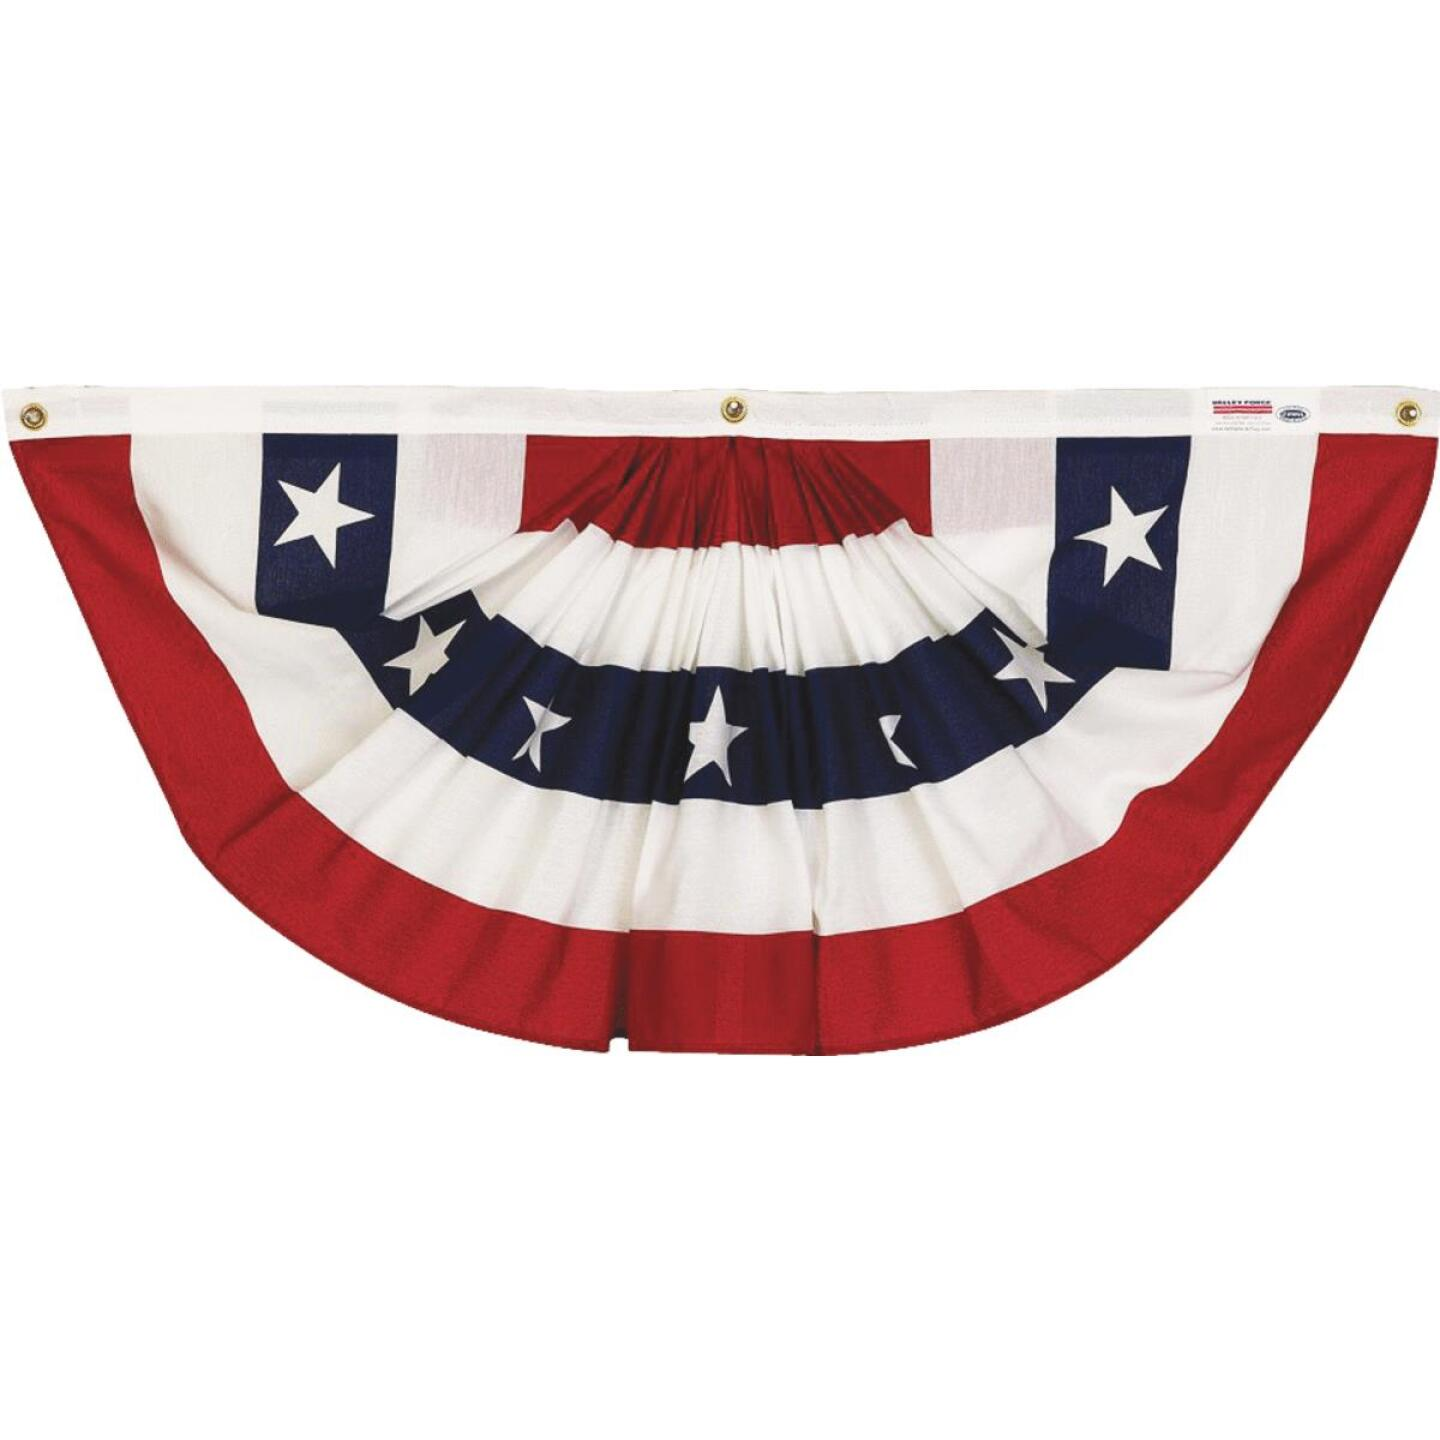 Valley Forge 3 Ft. W. x 6 Ft. L. Polycotton Fan Flag Bunting Image 1